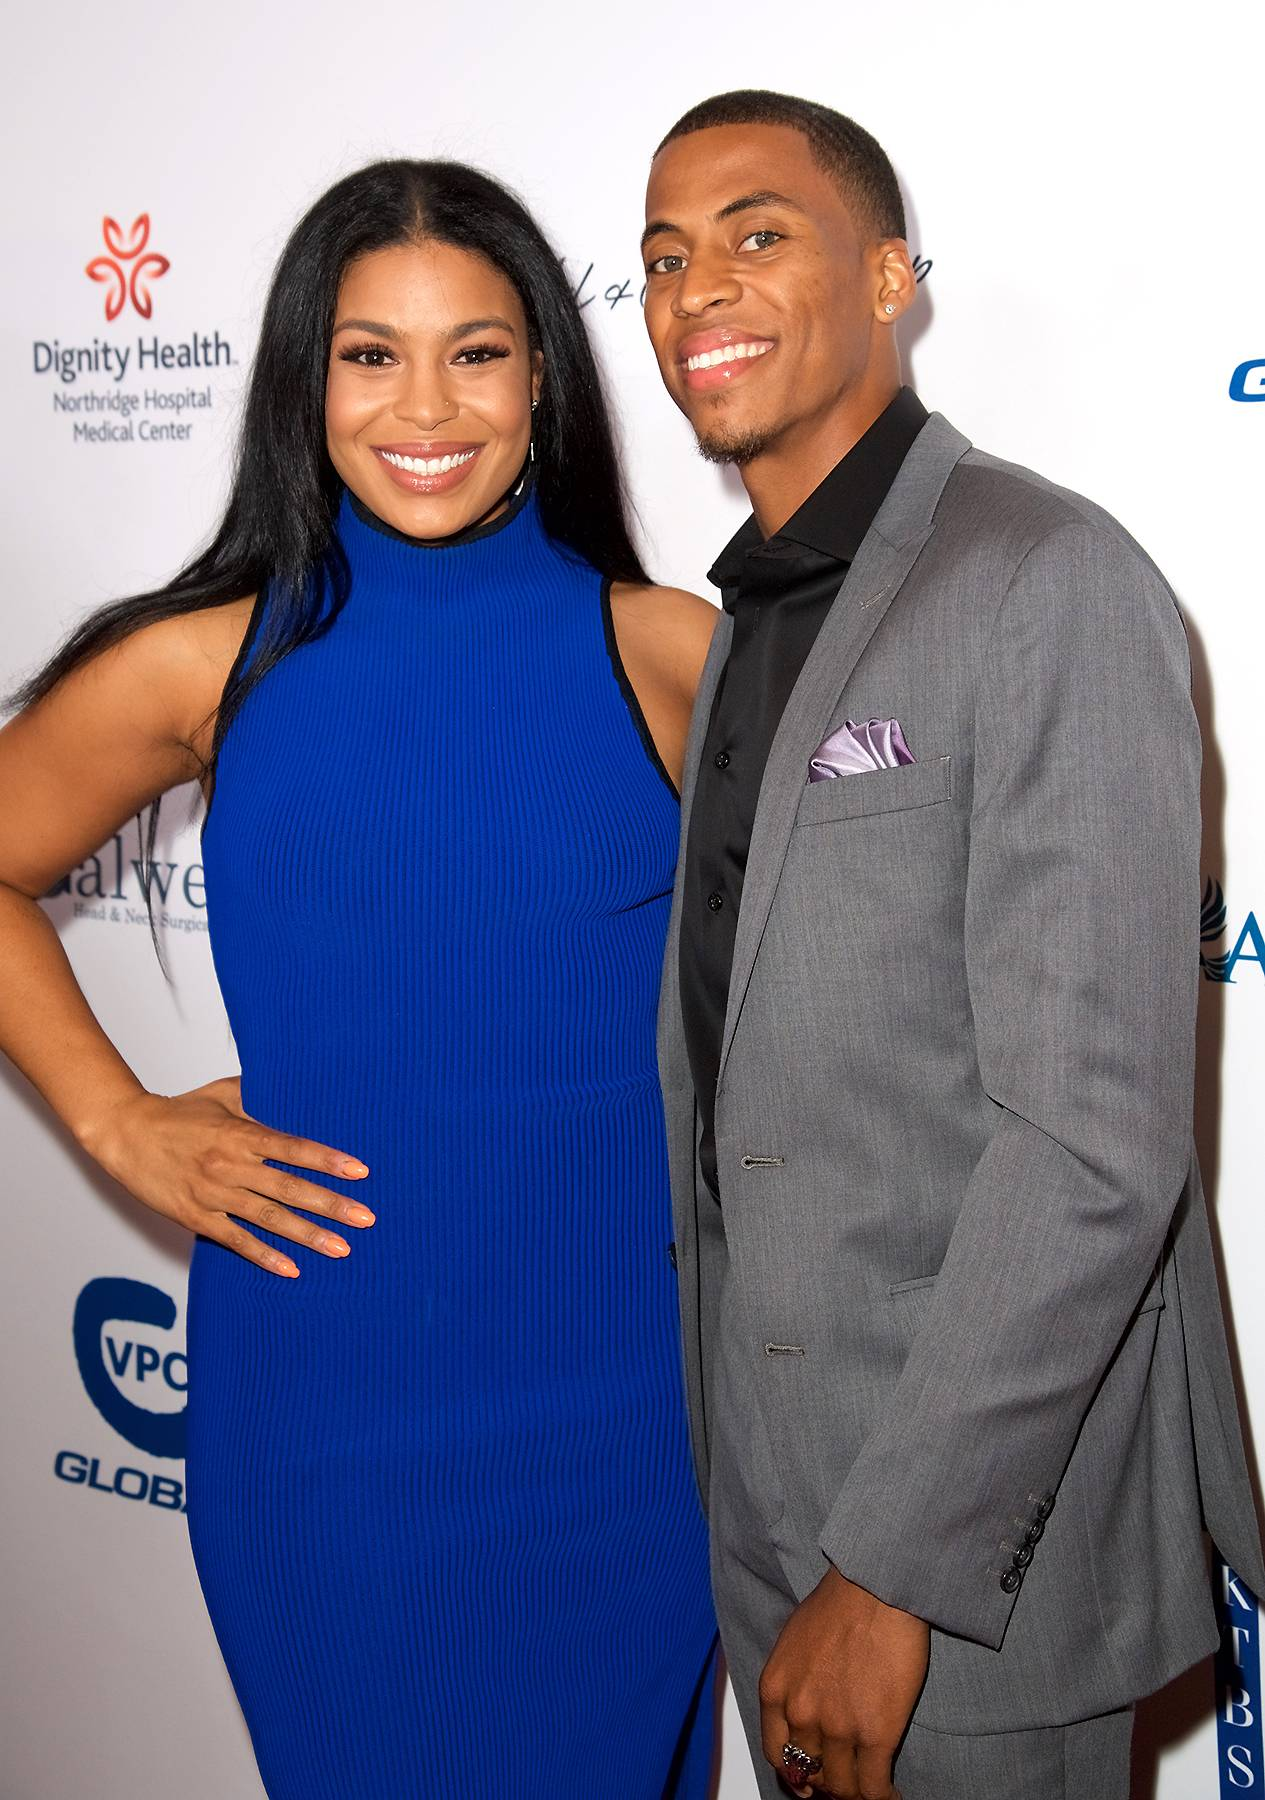 Jordin Sparks and Dana Isaiah attend the 17th Annual Harold & Carole Pump Foundation Gala at The Beverly Hilton Hotel on August 11, 2017 in Beverly Hills, California. (Photo: Earl Gibson III/WireImage)